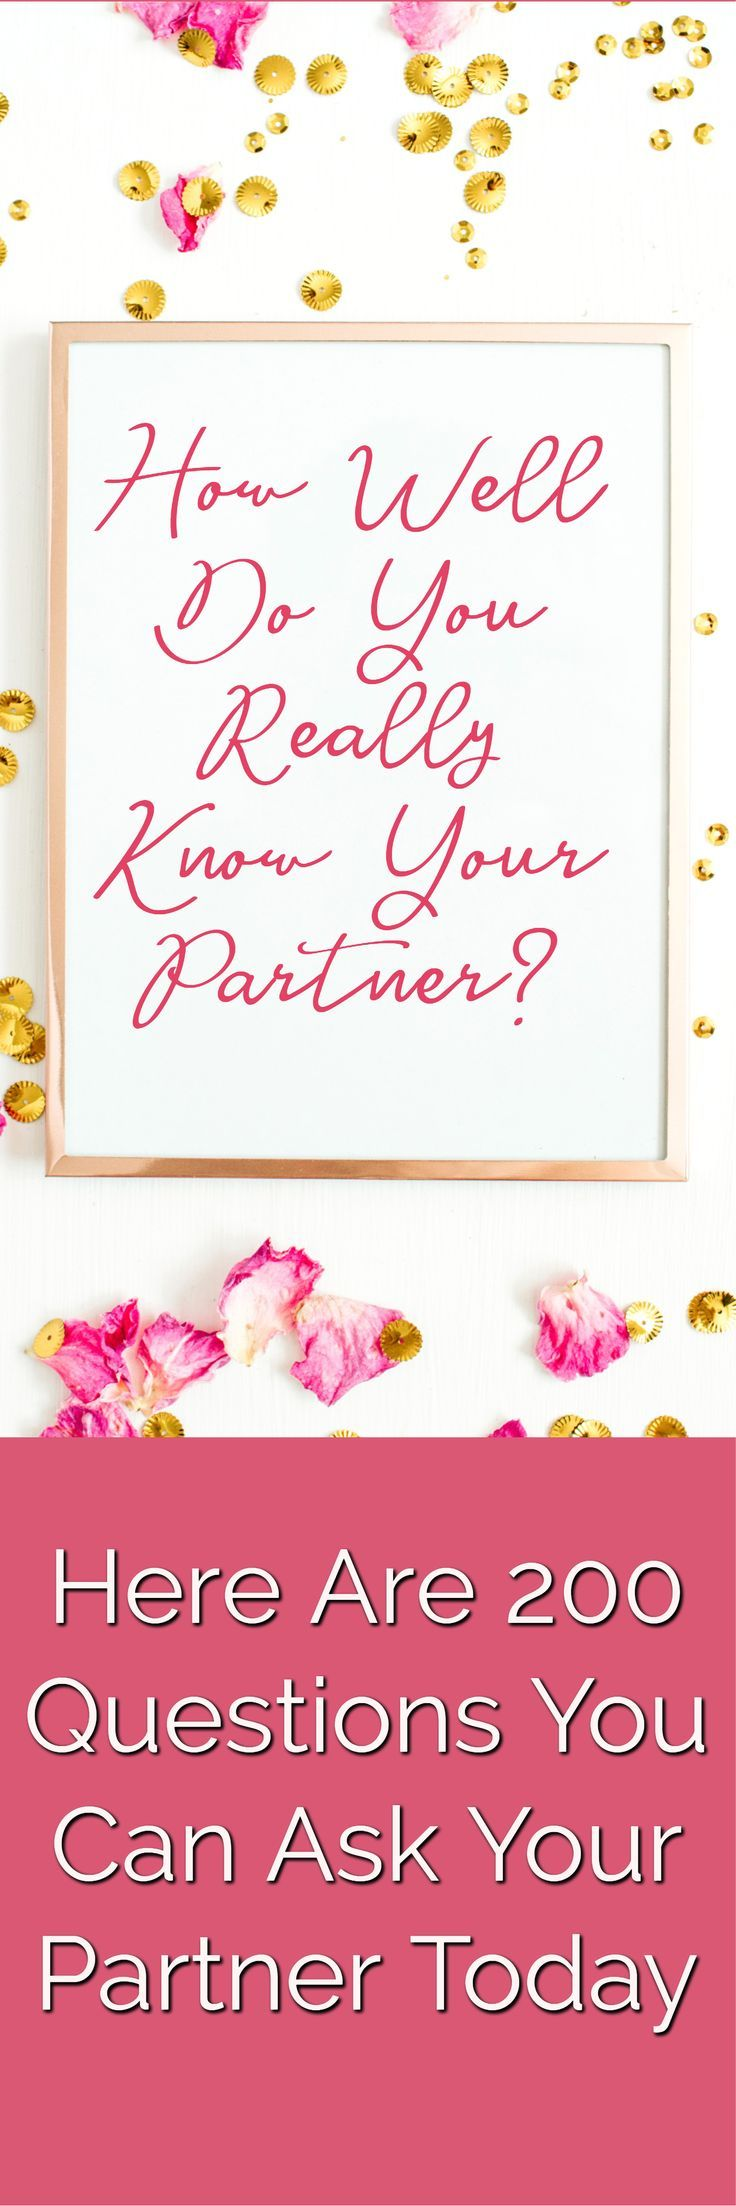 200 Questions To Ask Your Partner Today | Best Relationship Advice Tips | How To strengthen your marriage | How to improve your relationships | How To Save Your Marriage | Save Your Relationship | Best Relationship Tips Ever | Communication Skills